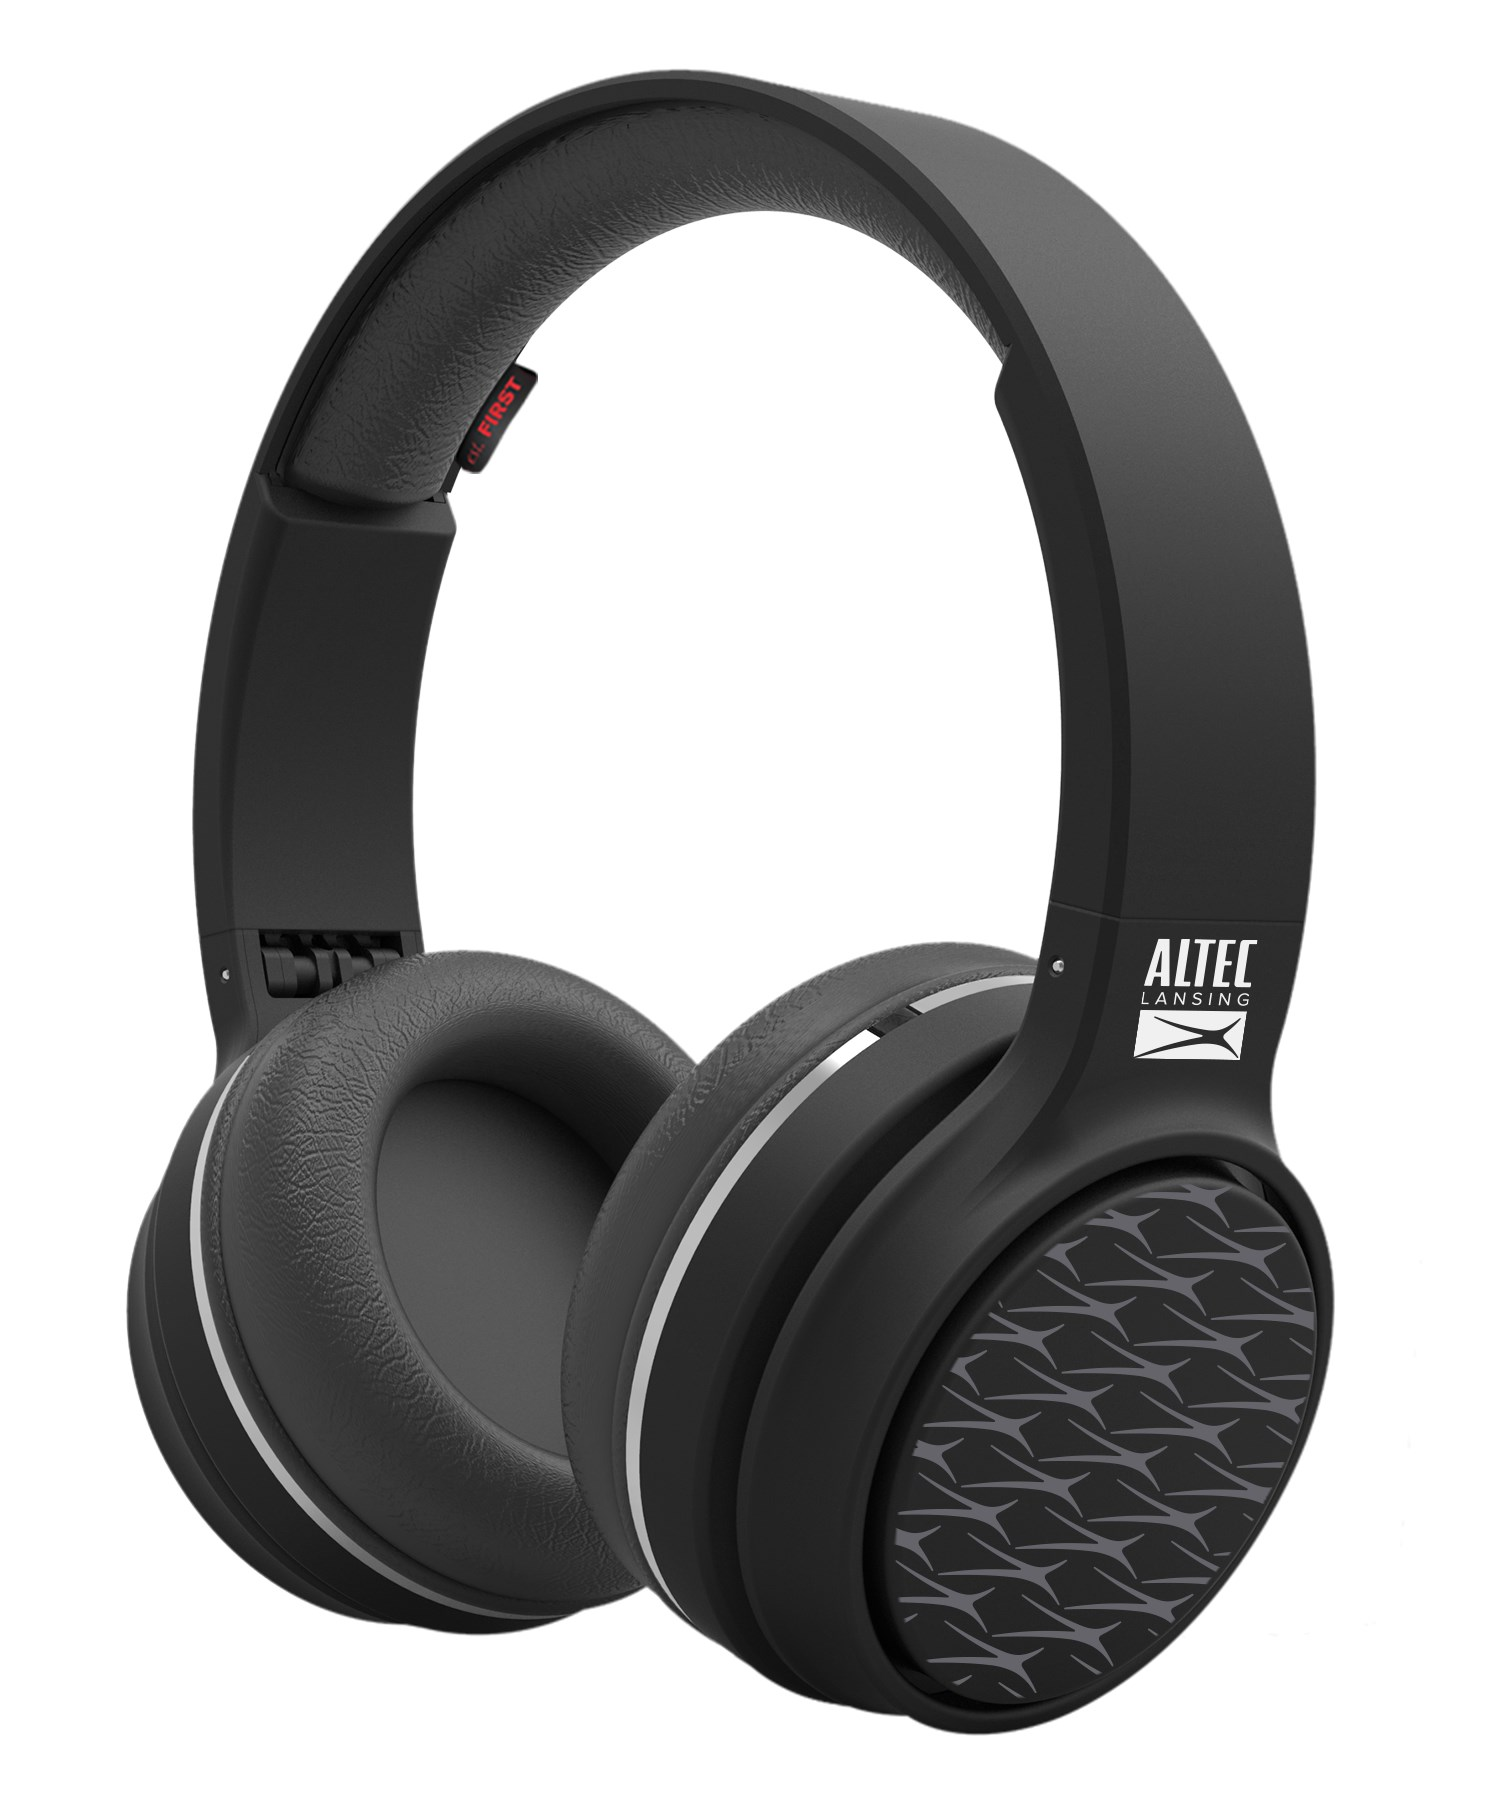 ALTEC LANSING bluetooth headphones Ring 'n' Go play & party, μαύρα - ALTEC 21745